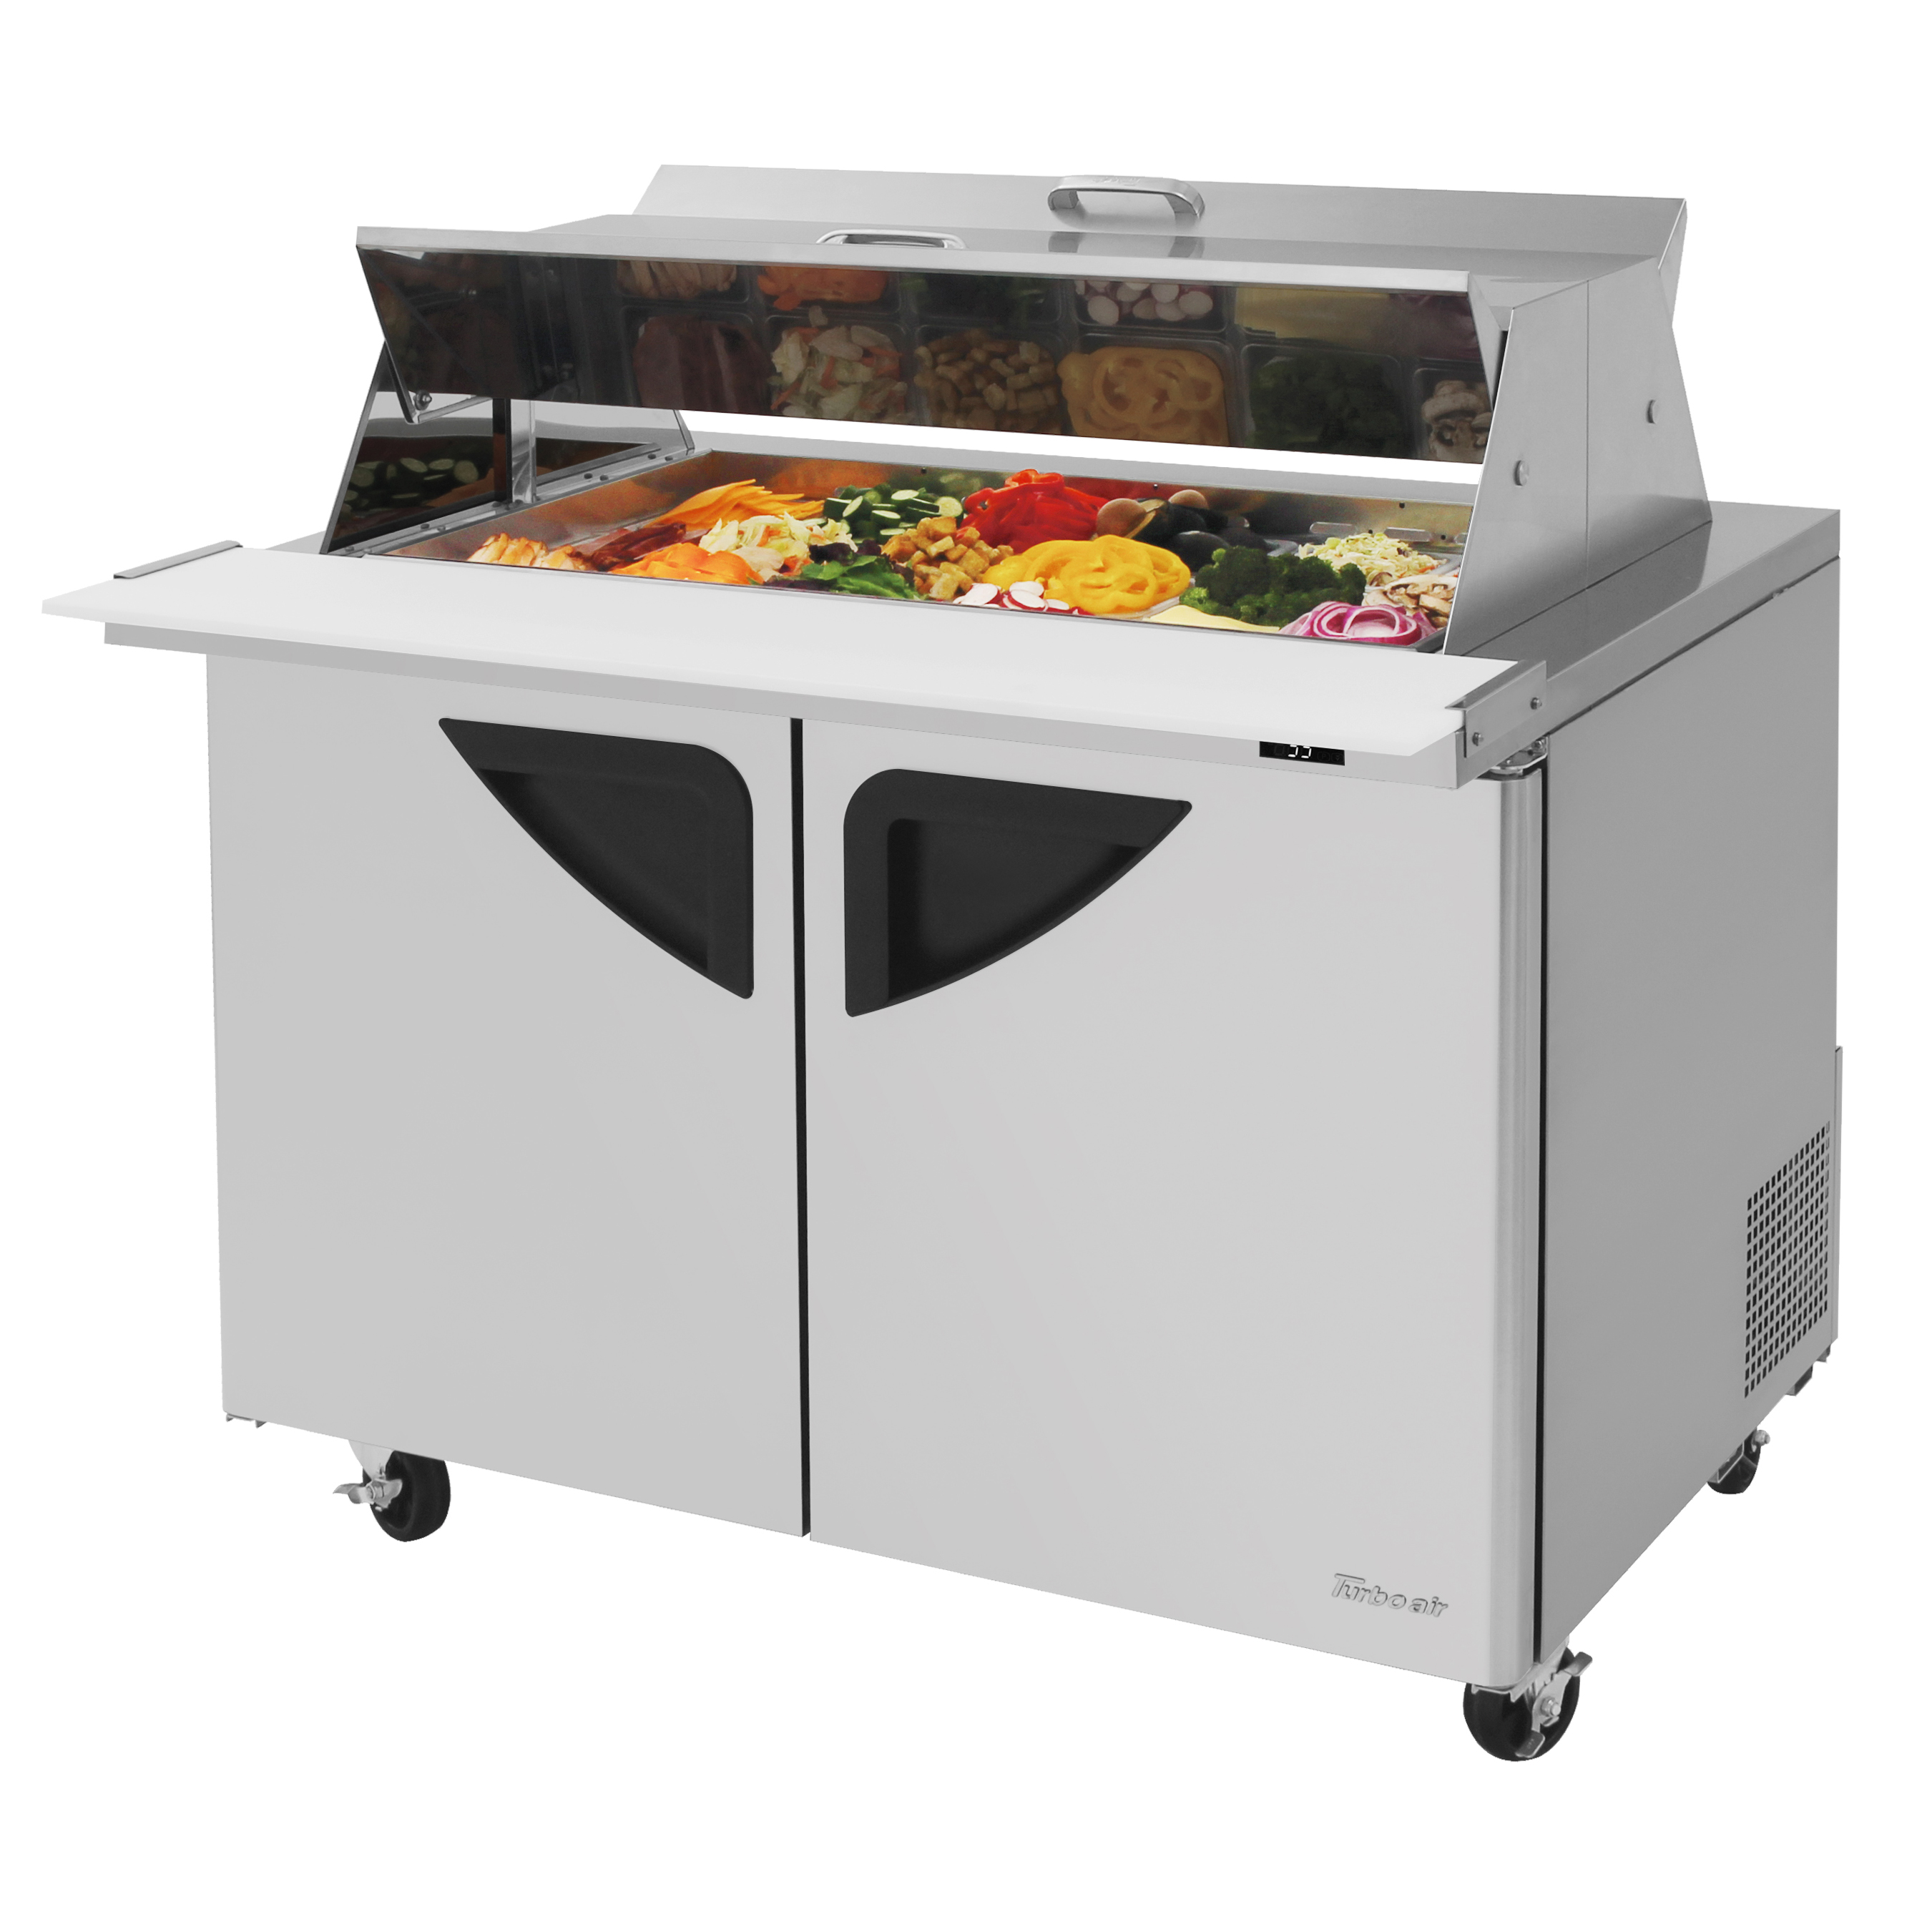 Turbo Air TST-48SD-18-N-DS refrigerated counter, mega top sandwich / salad unit